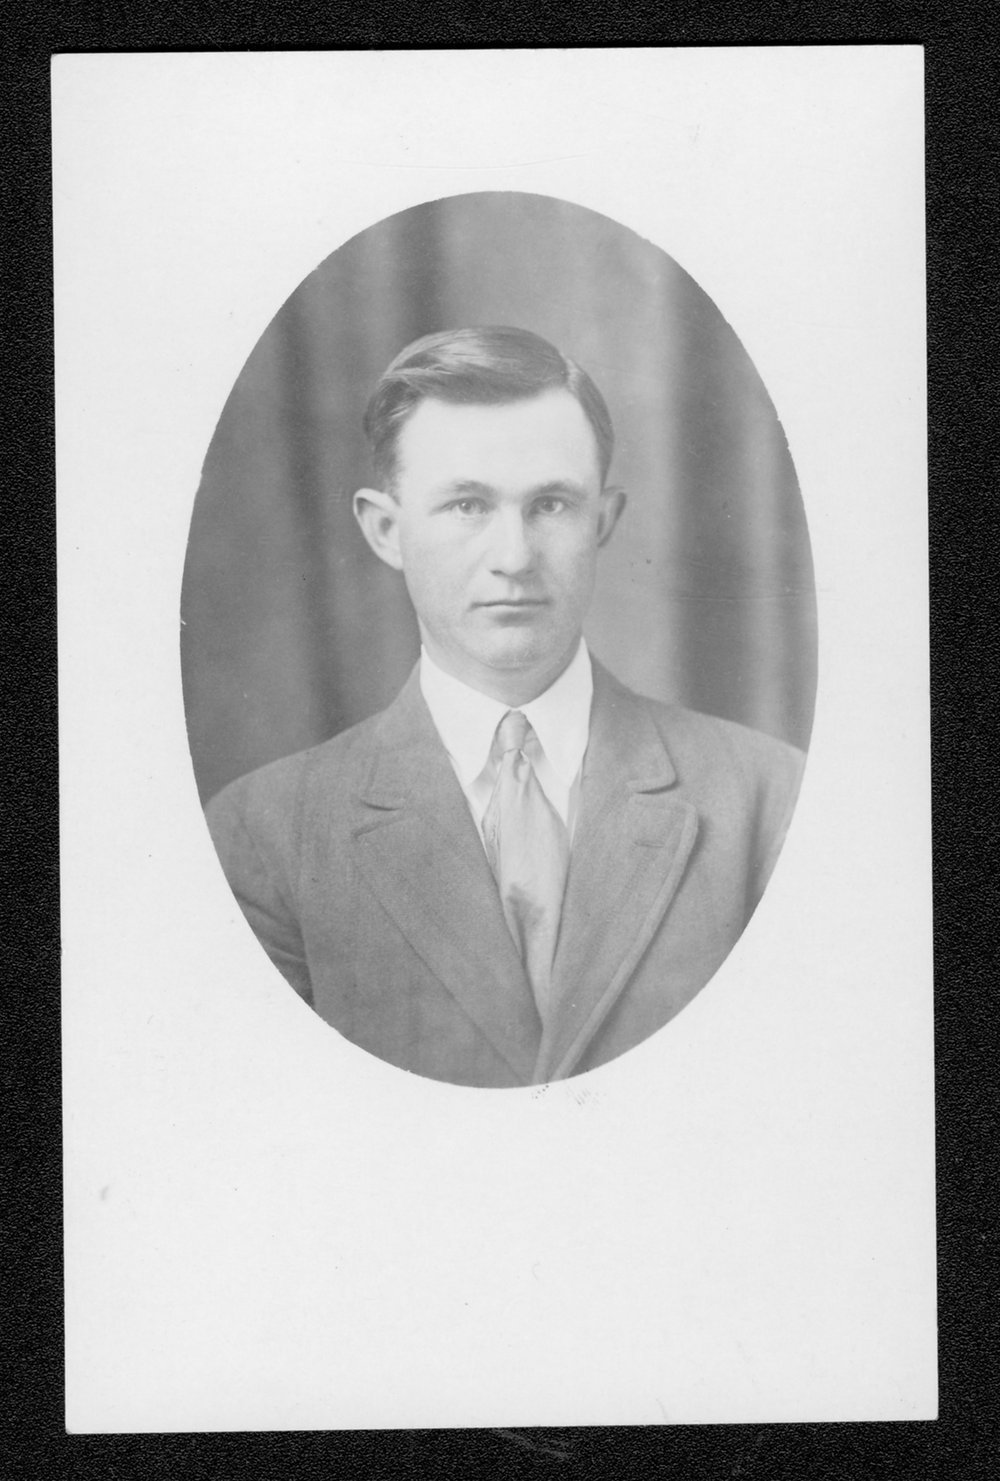 James L. Hughes, World War I soldier - 1